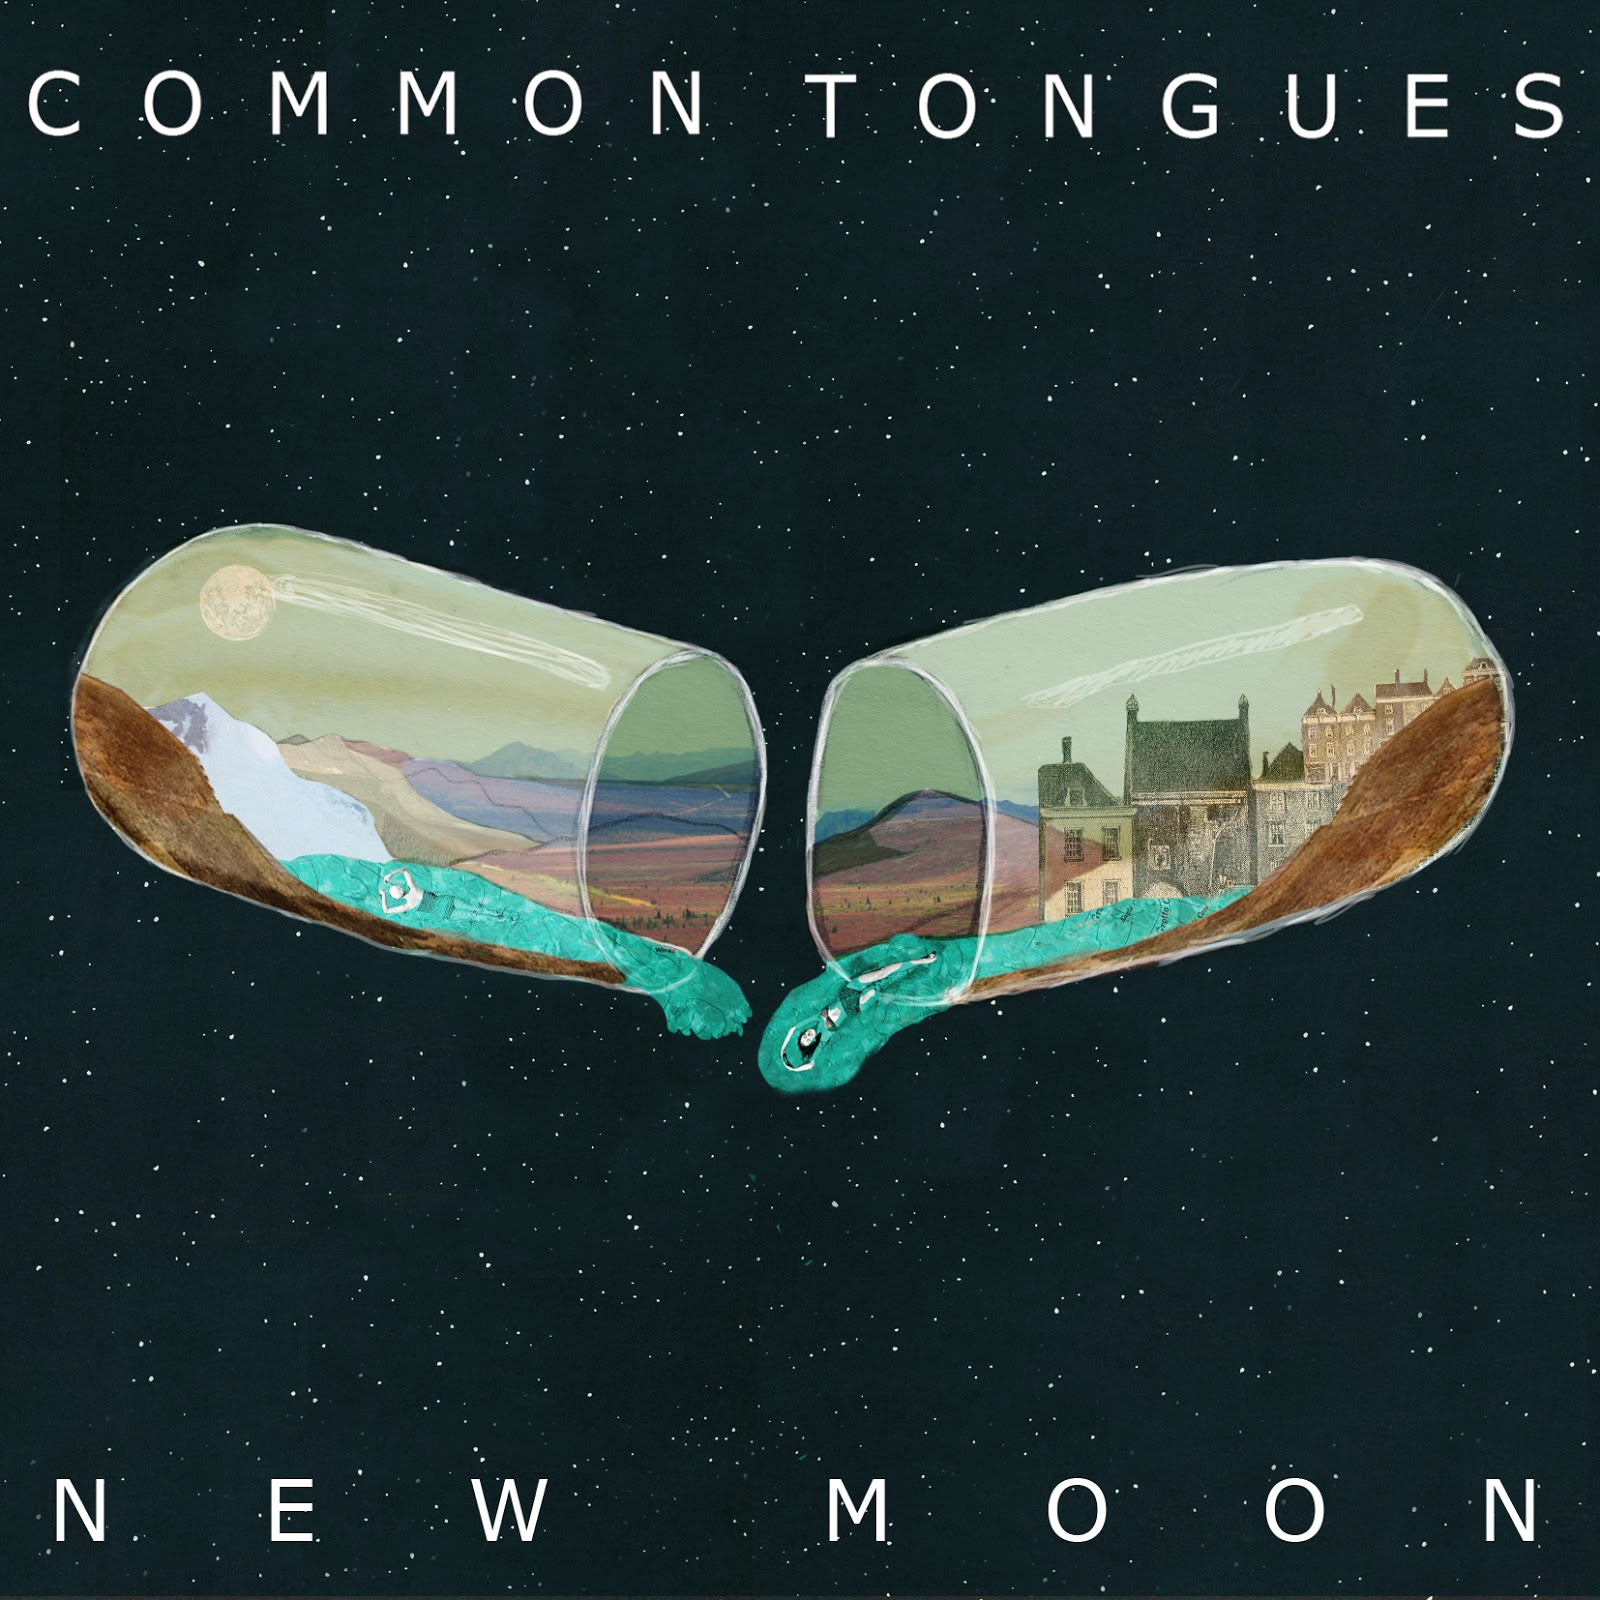 Exclusive: Watch Common Tongues Video For Single 'New Moon'